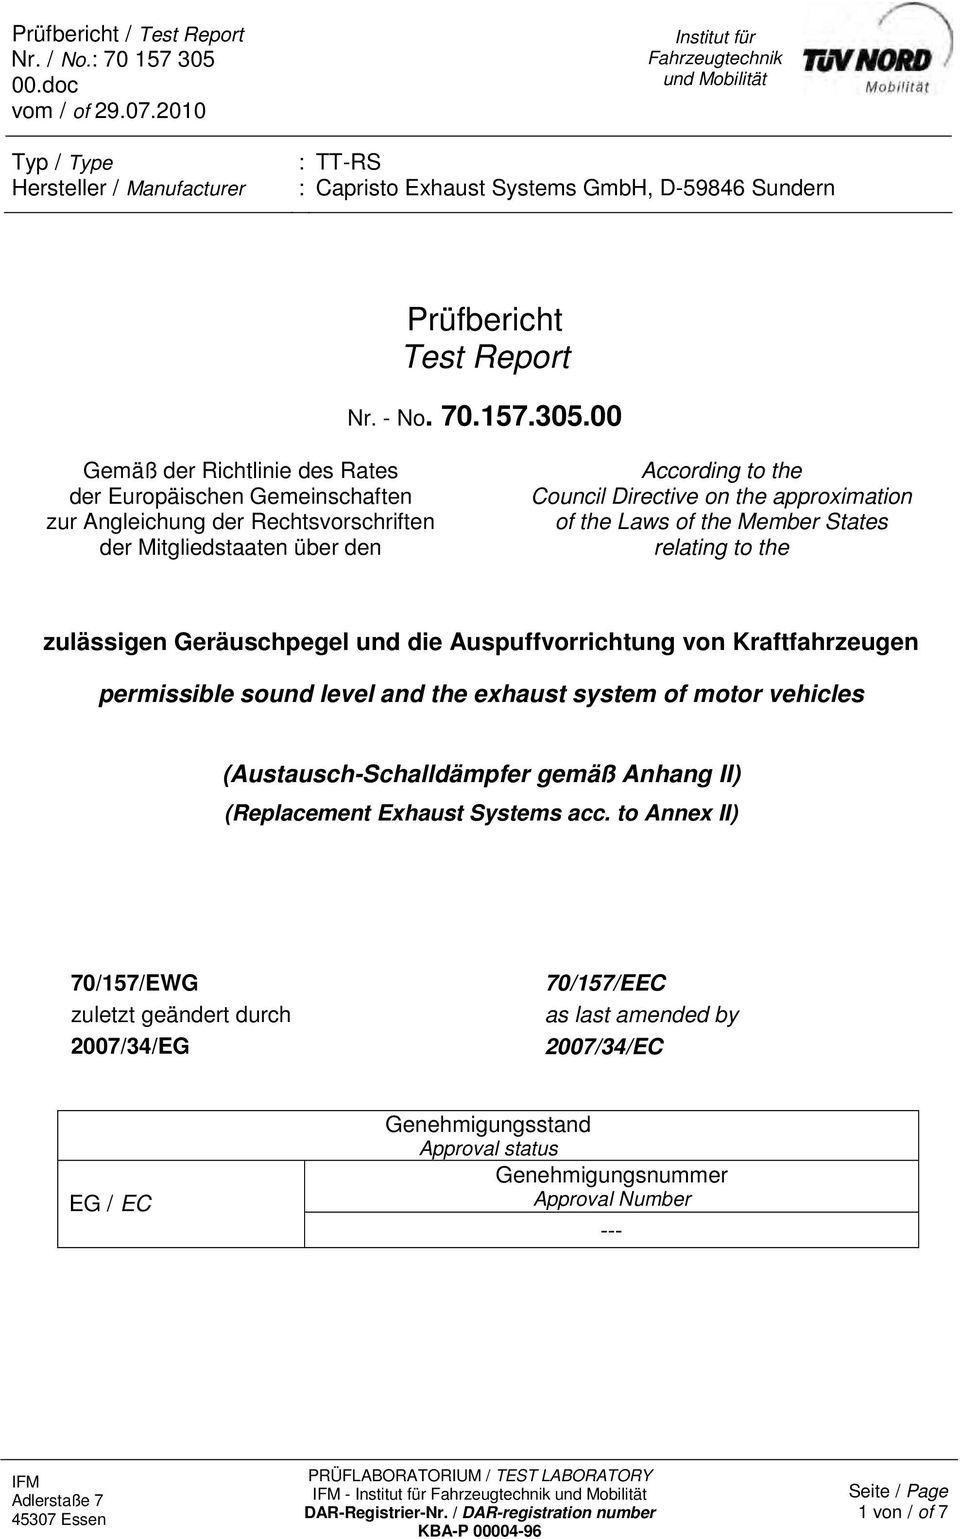 00 Gemäß der Richtlinie des Rates der Europäischen Gemeinschaften zur Angleichung der Rechtsvorschriften der Mitgliedstaaten über den According to the Council Directive on the approximation of the